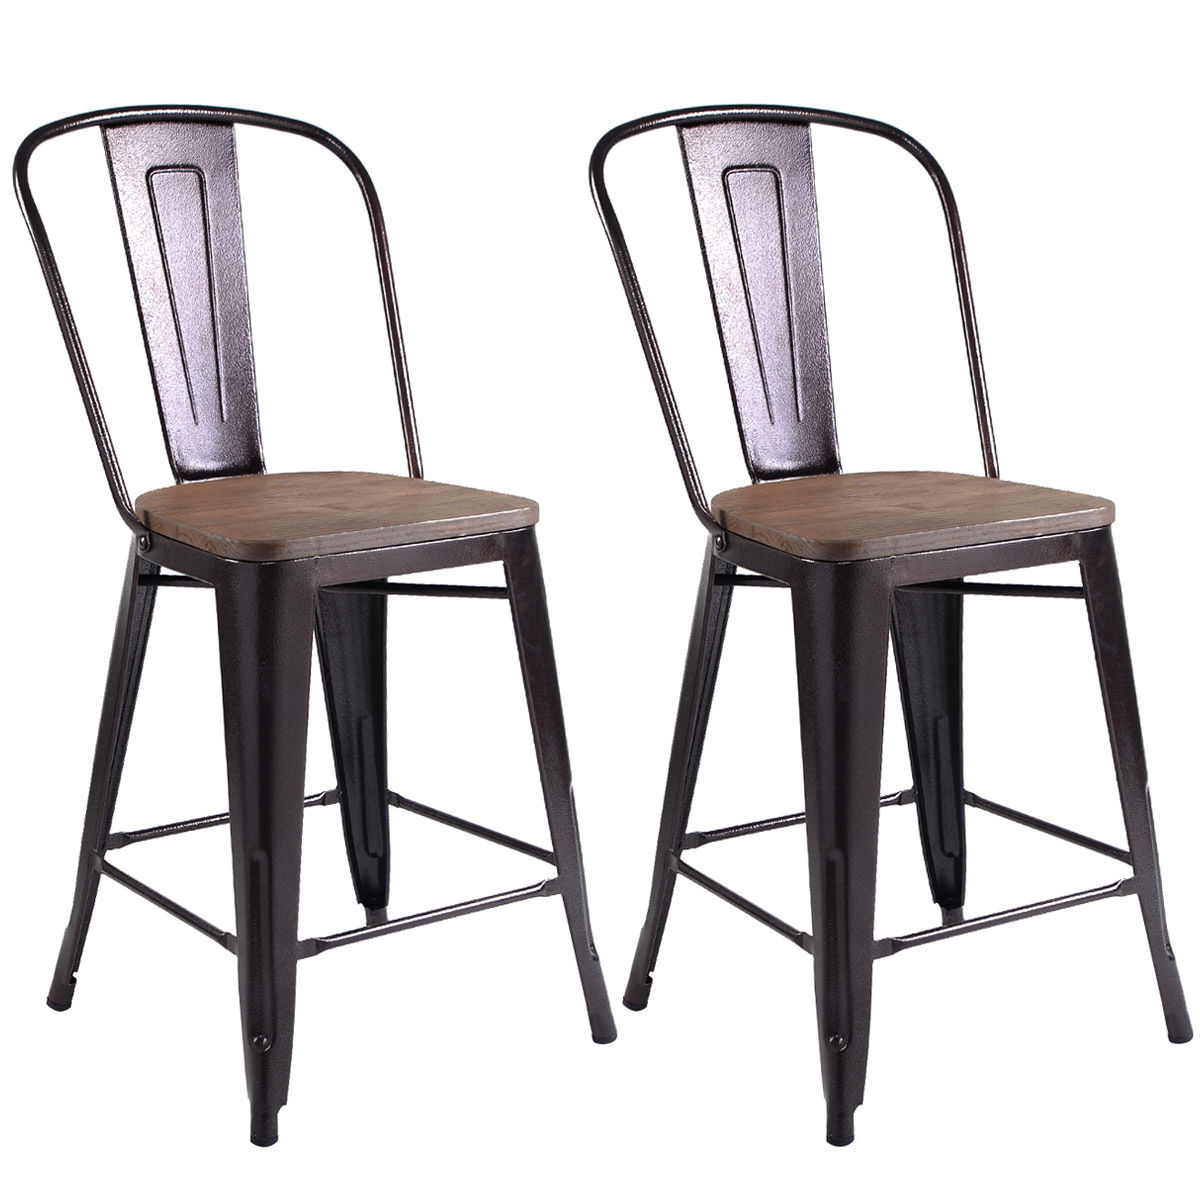 Costway Copper Set Of 2 Metal Wood Counter Stool Kitchen Dining Bar Chairs  Rustic   Walmart.com